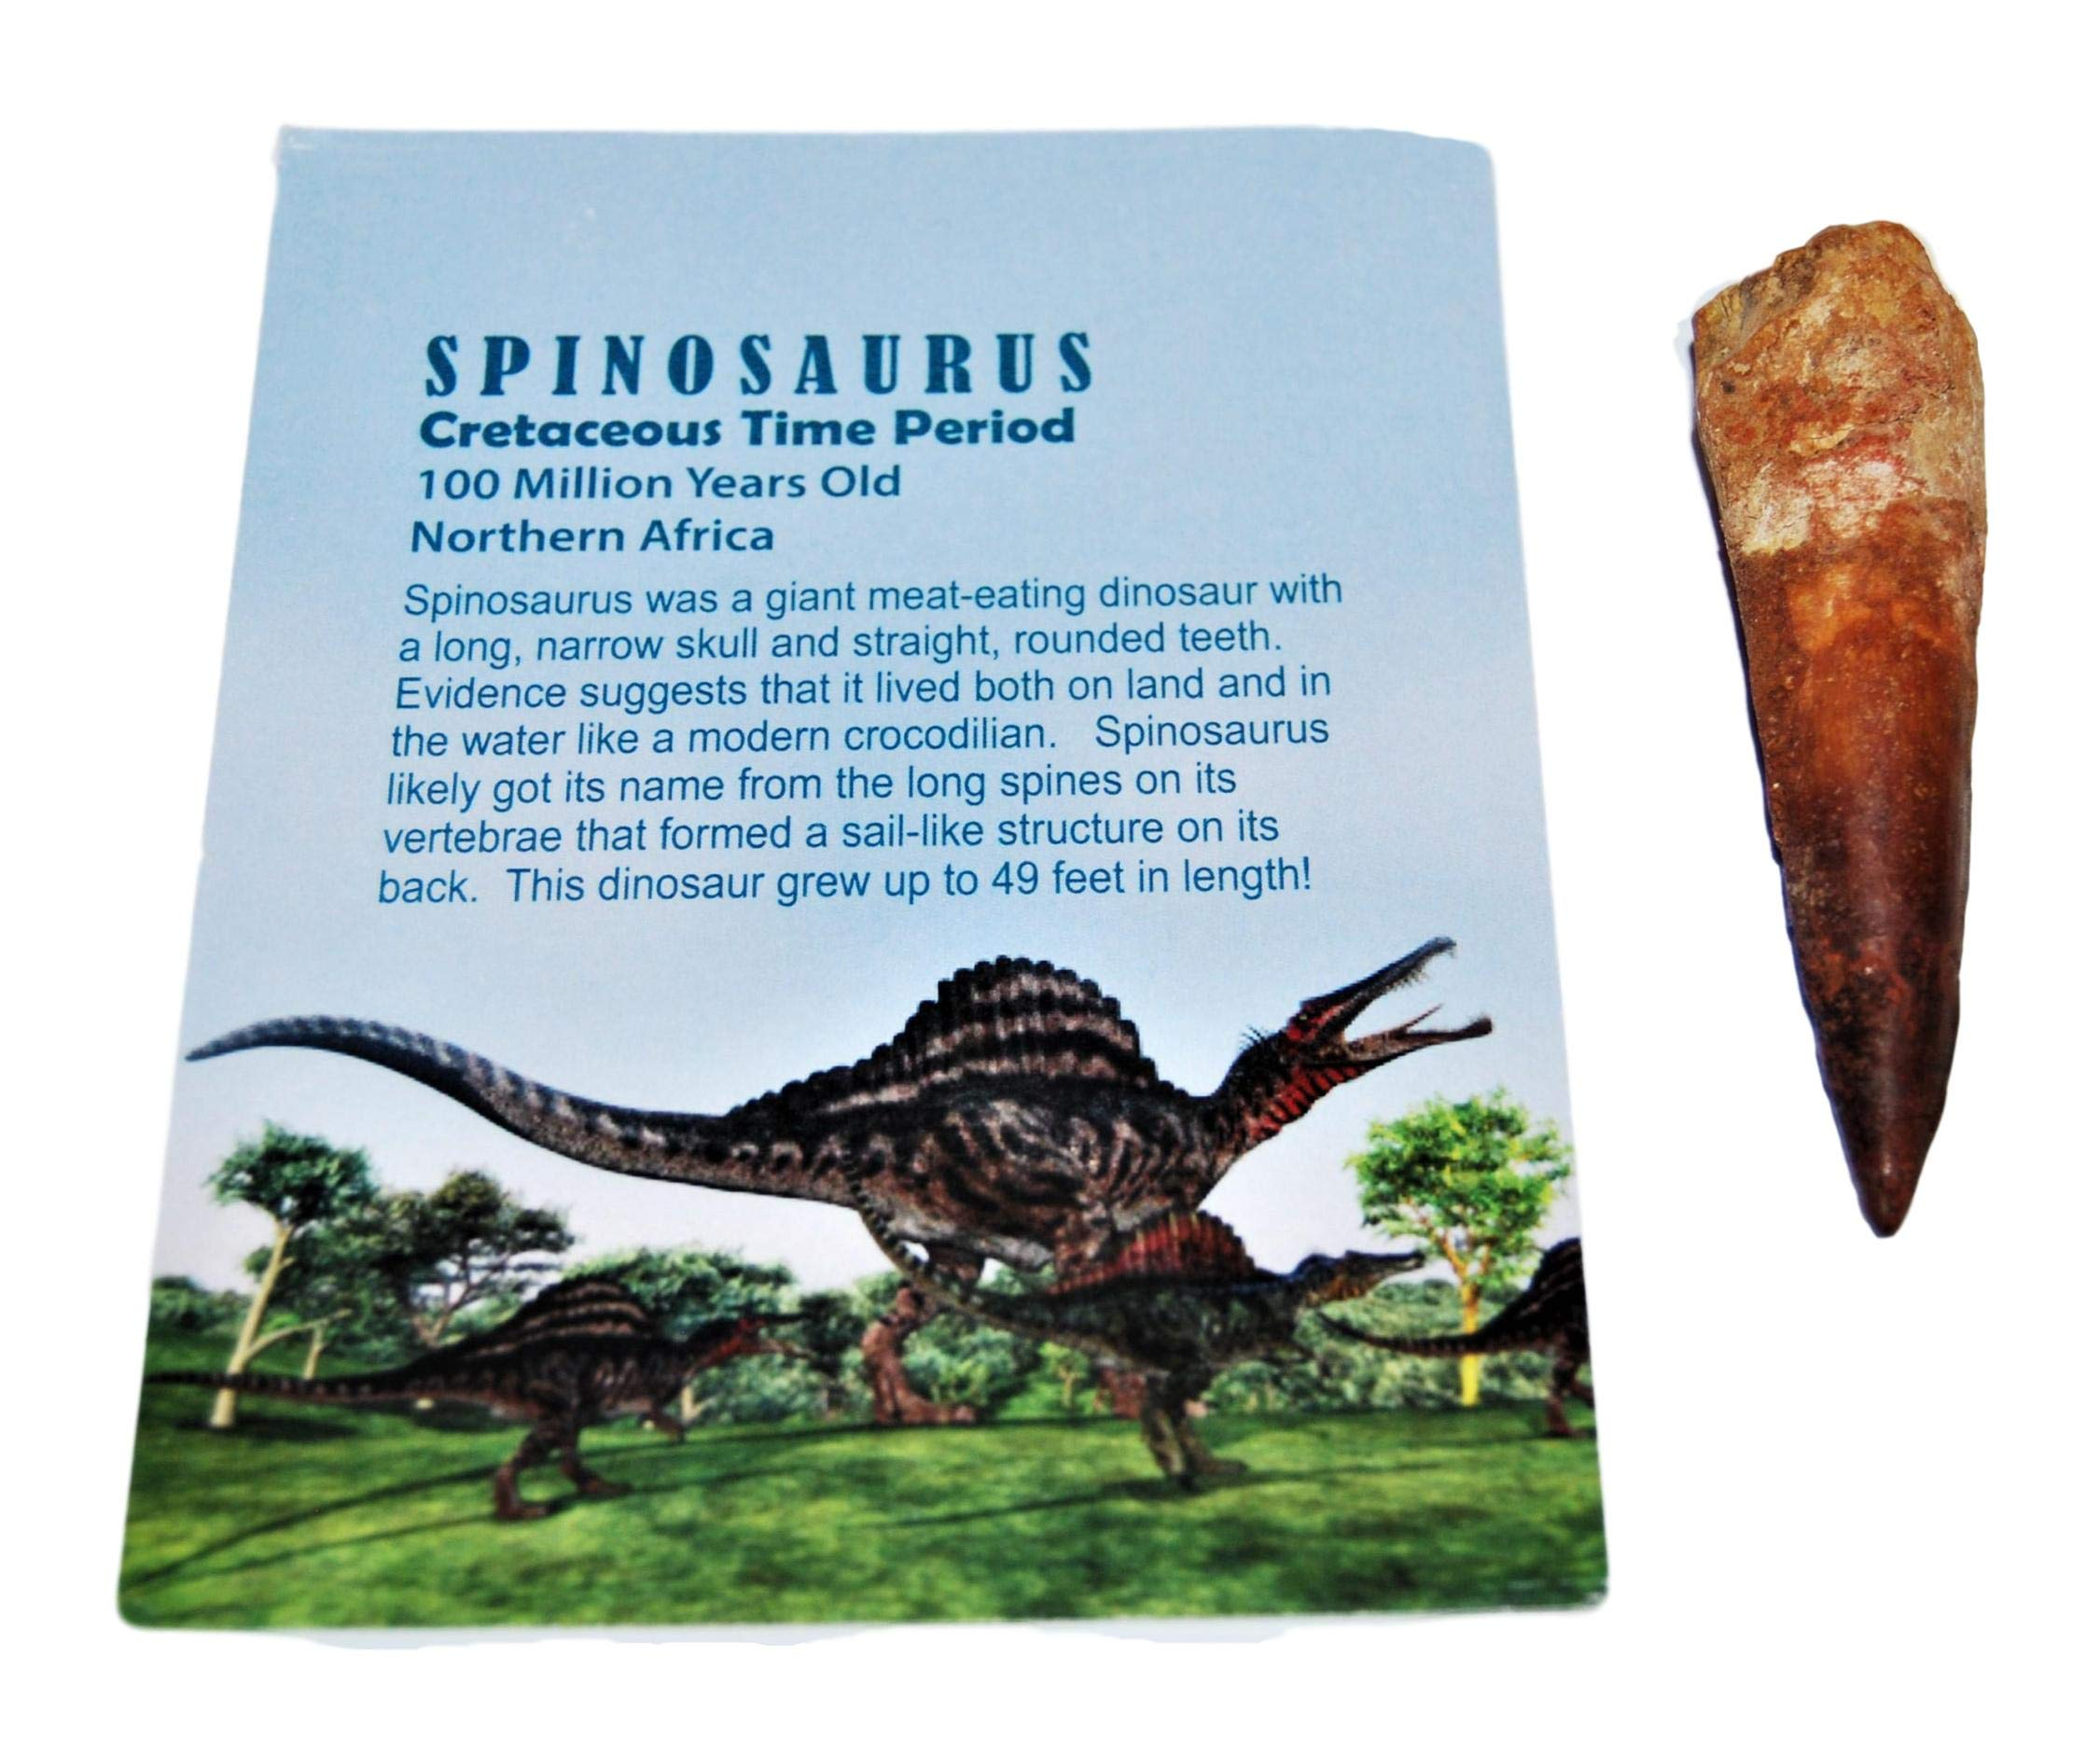 Spinosaurus Dinosaur Tooth Fossil 2 inch to 3 inch Size #14058 4o